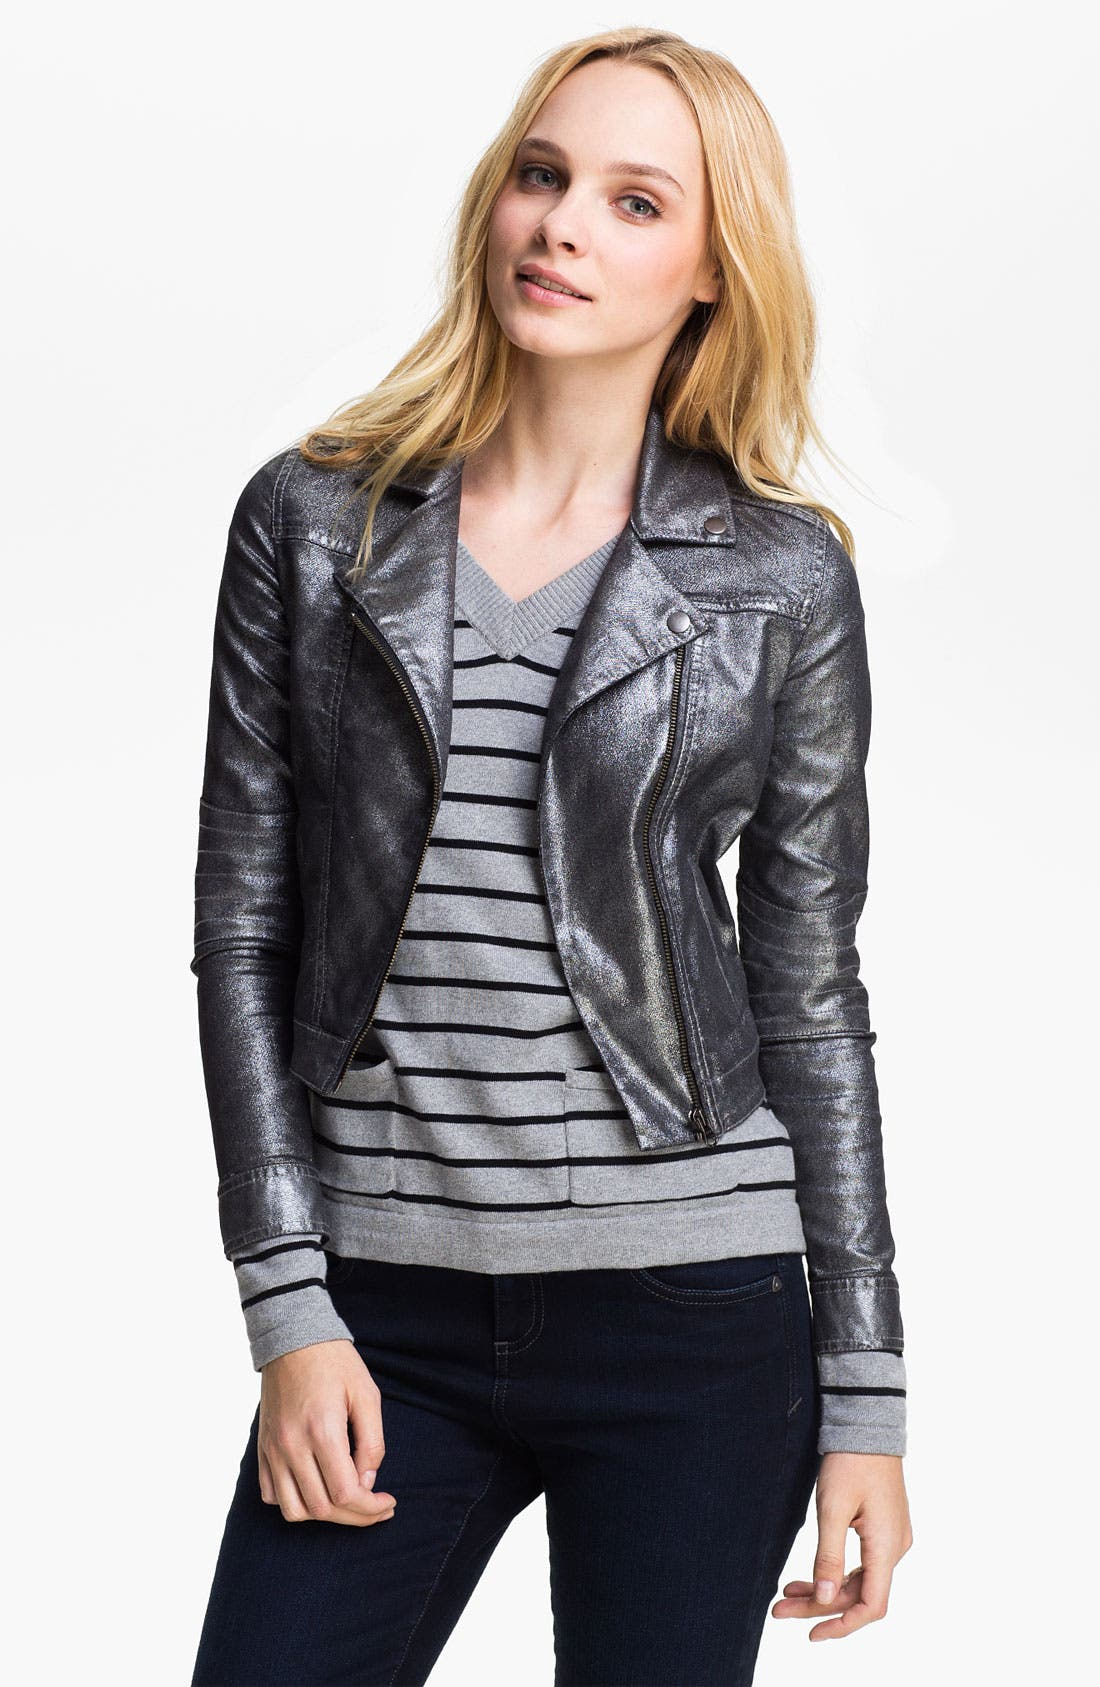 Alternate Image 1 Selected - Two by Vince Camuto Metallic Moto Jacket